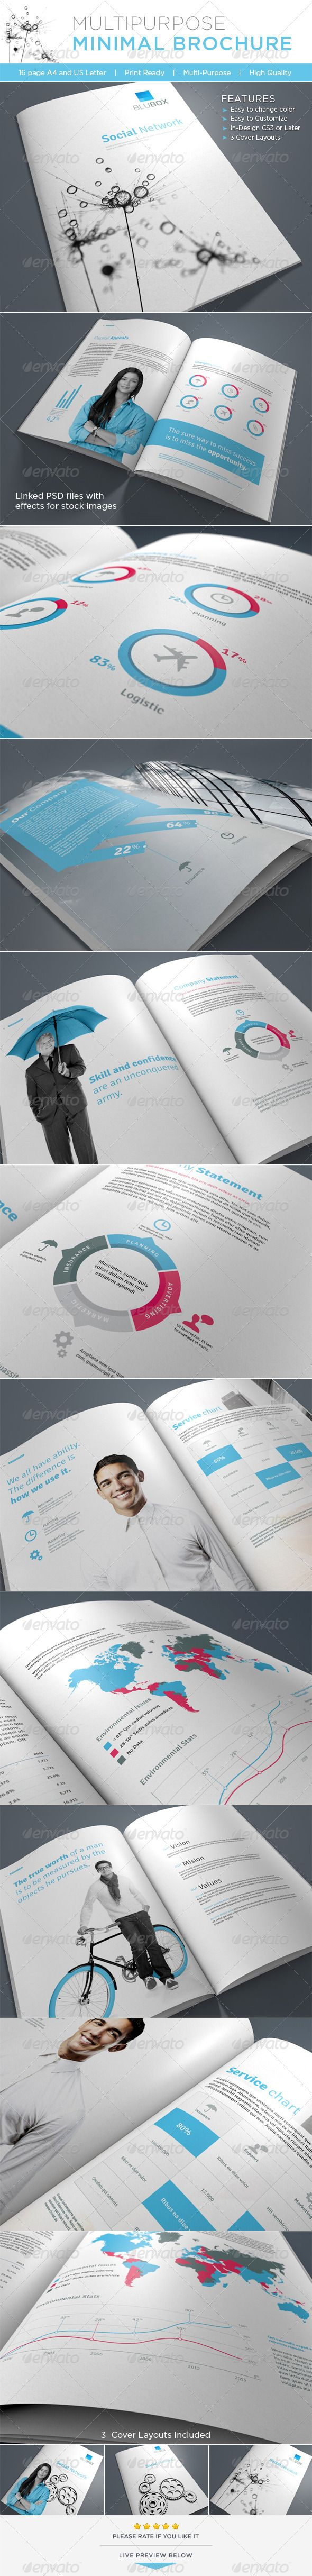 Best Corporate Brochure Design Images On   Graph